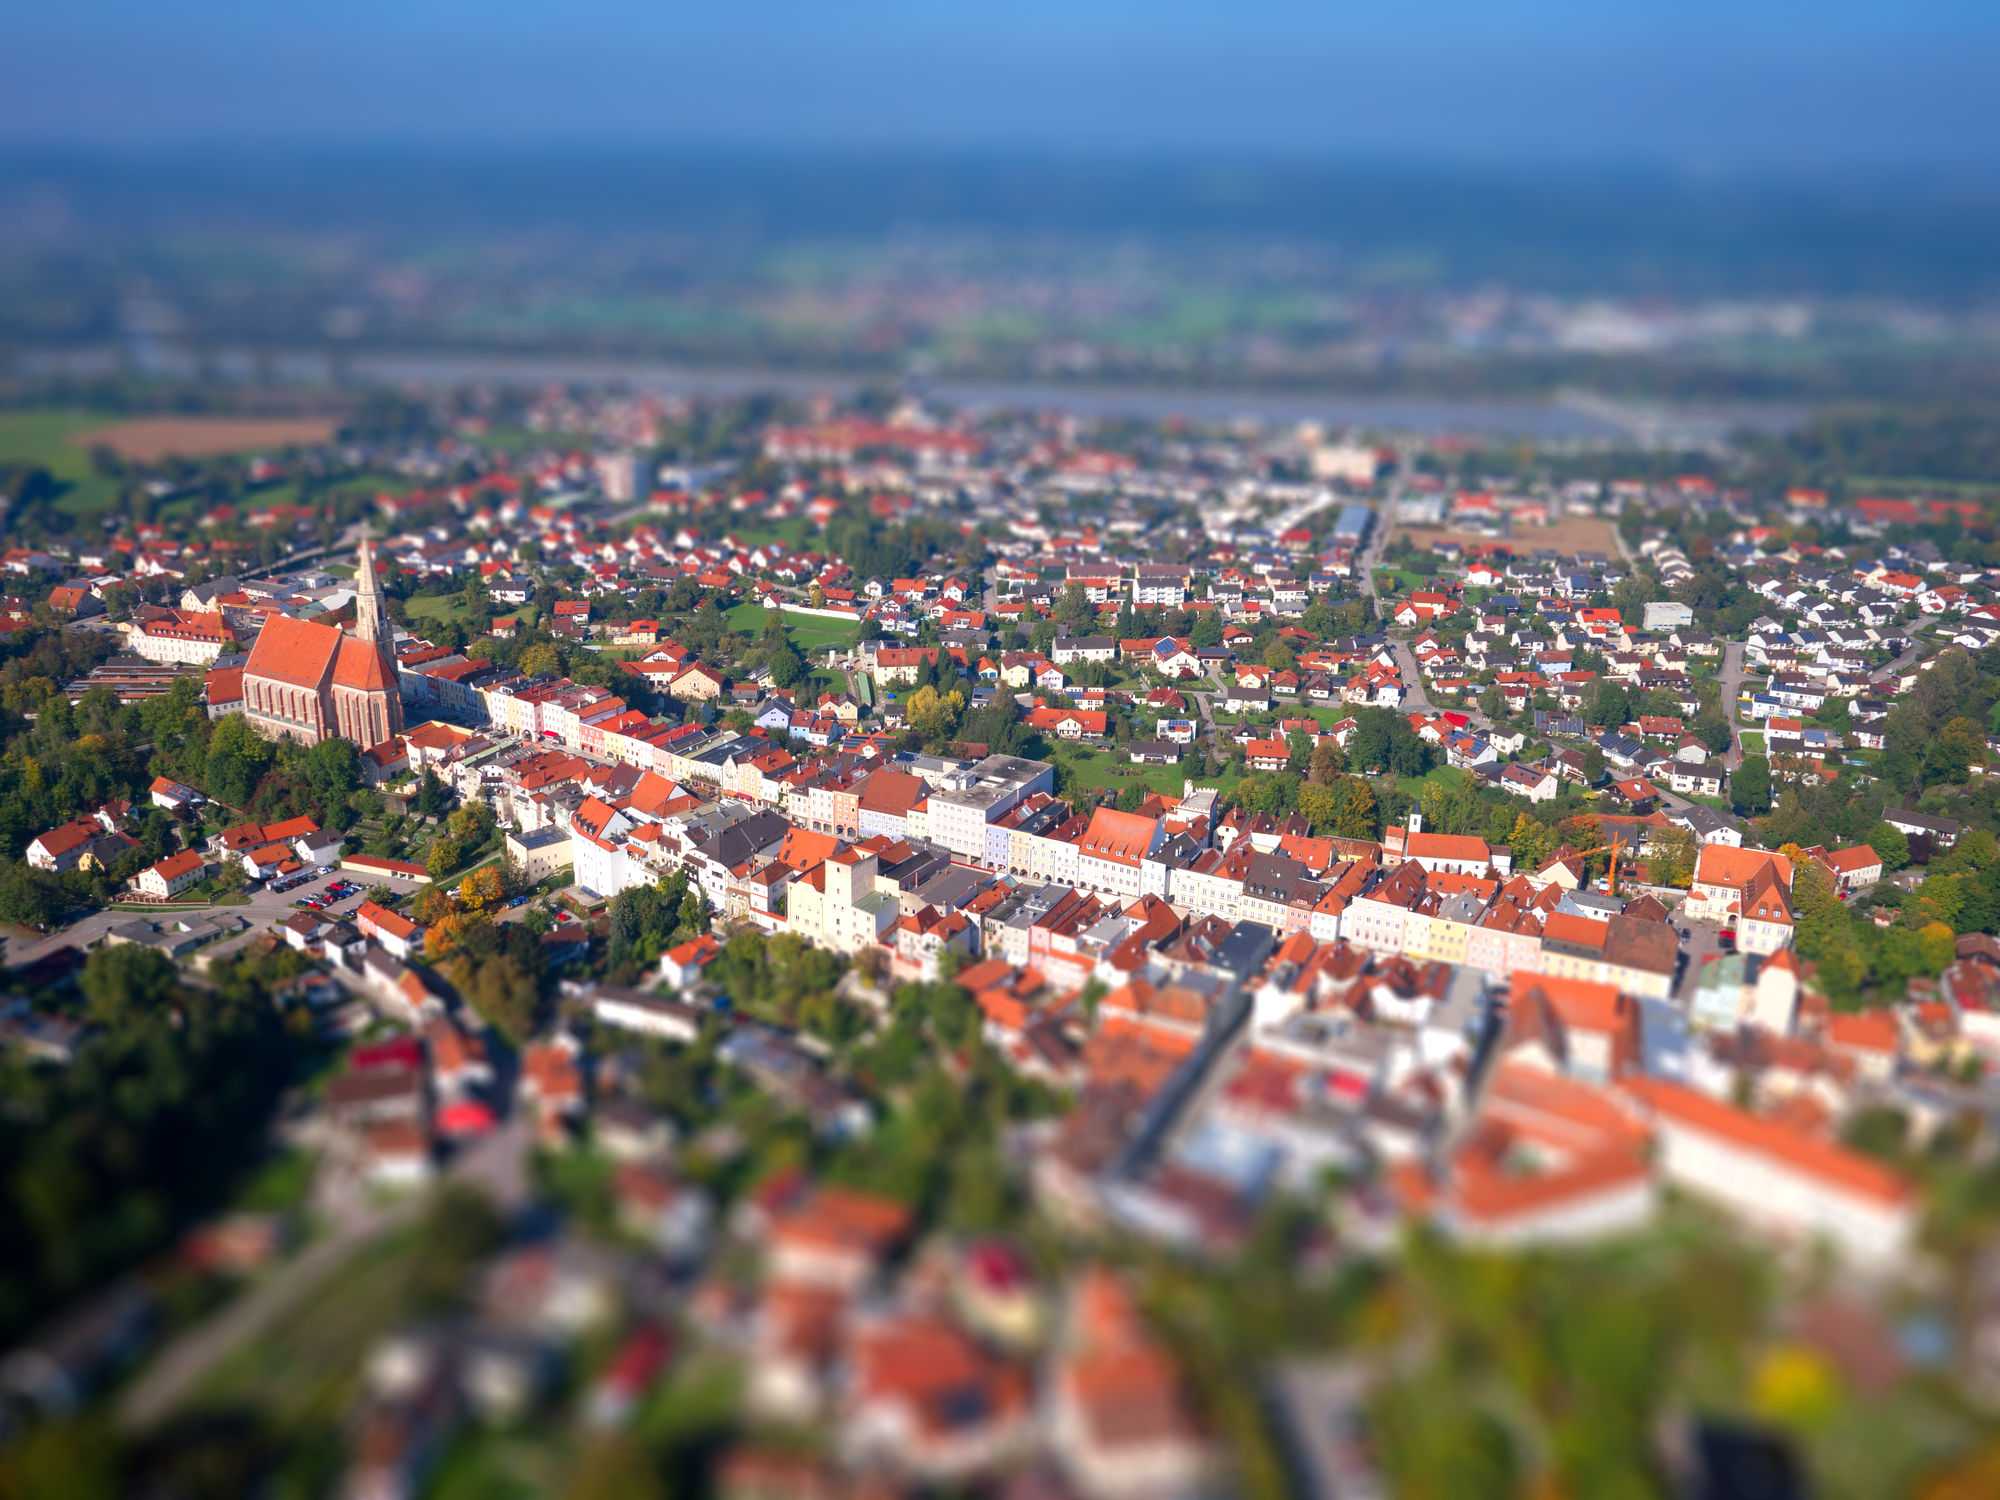 Luftbild Neuöttings mit Tilt-Shift Effekt